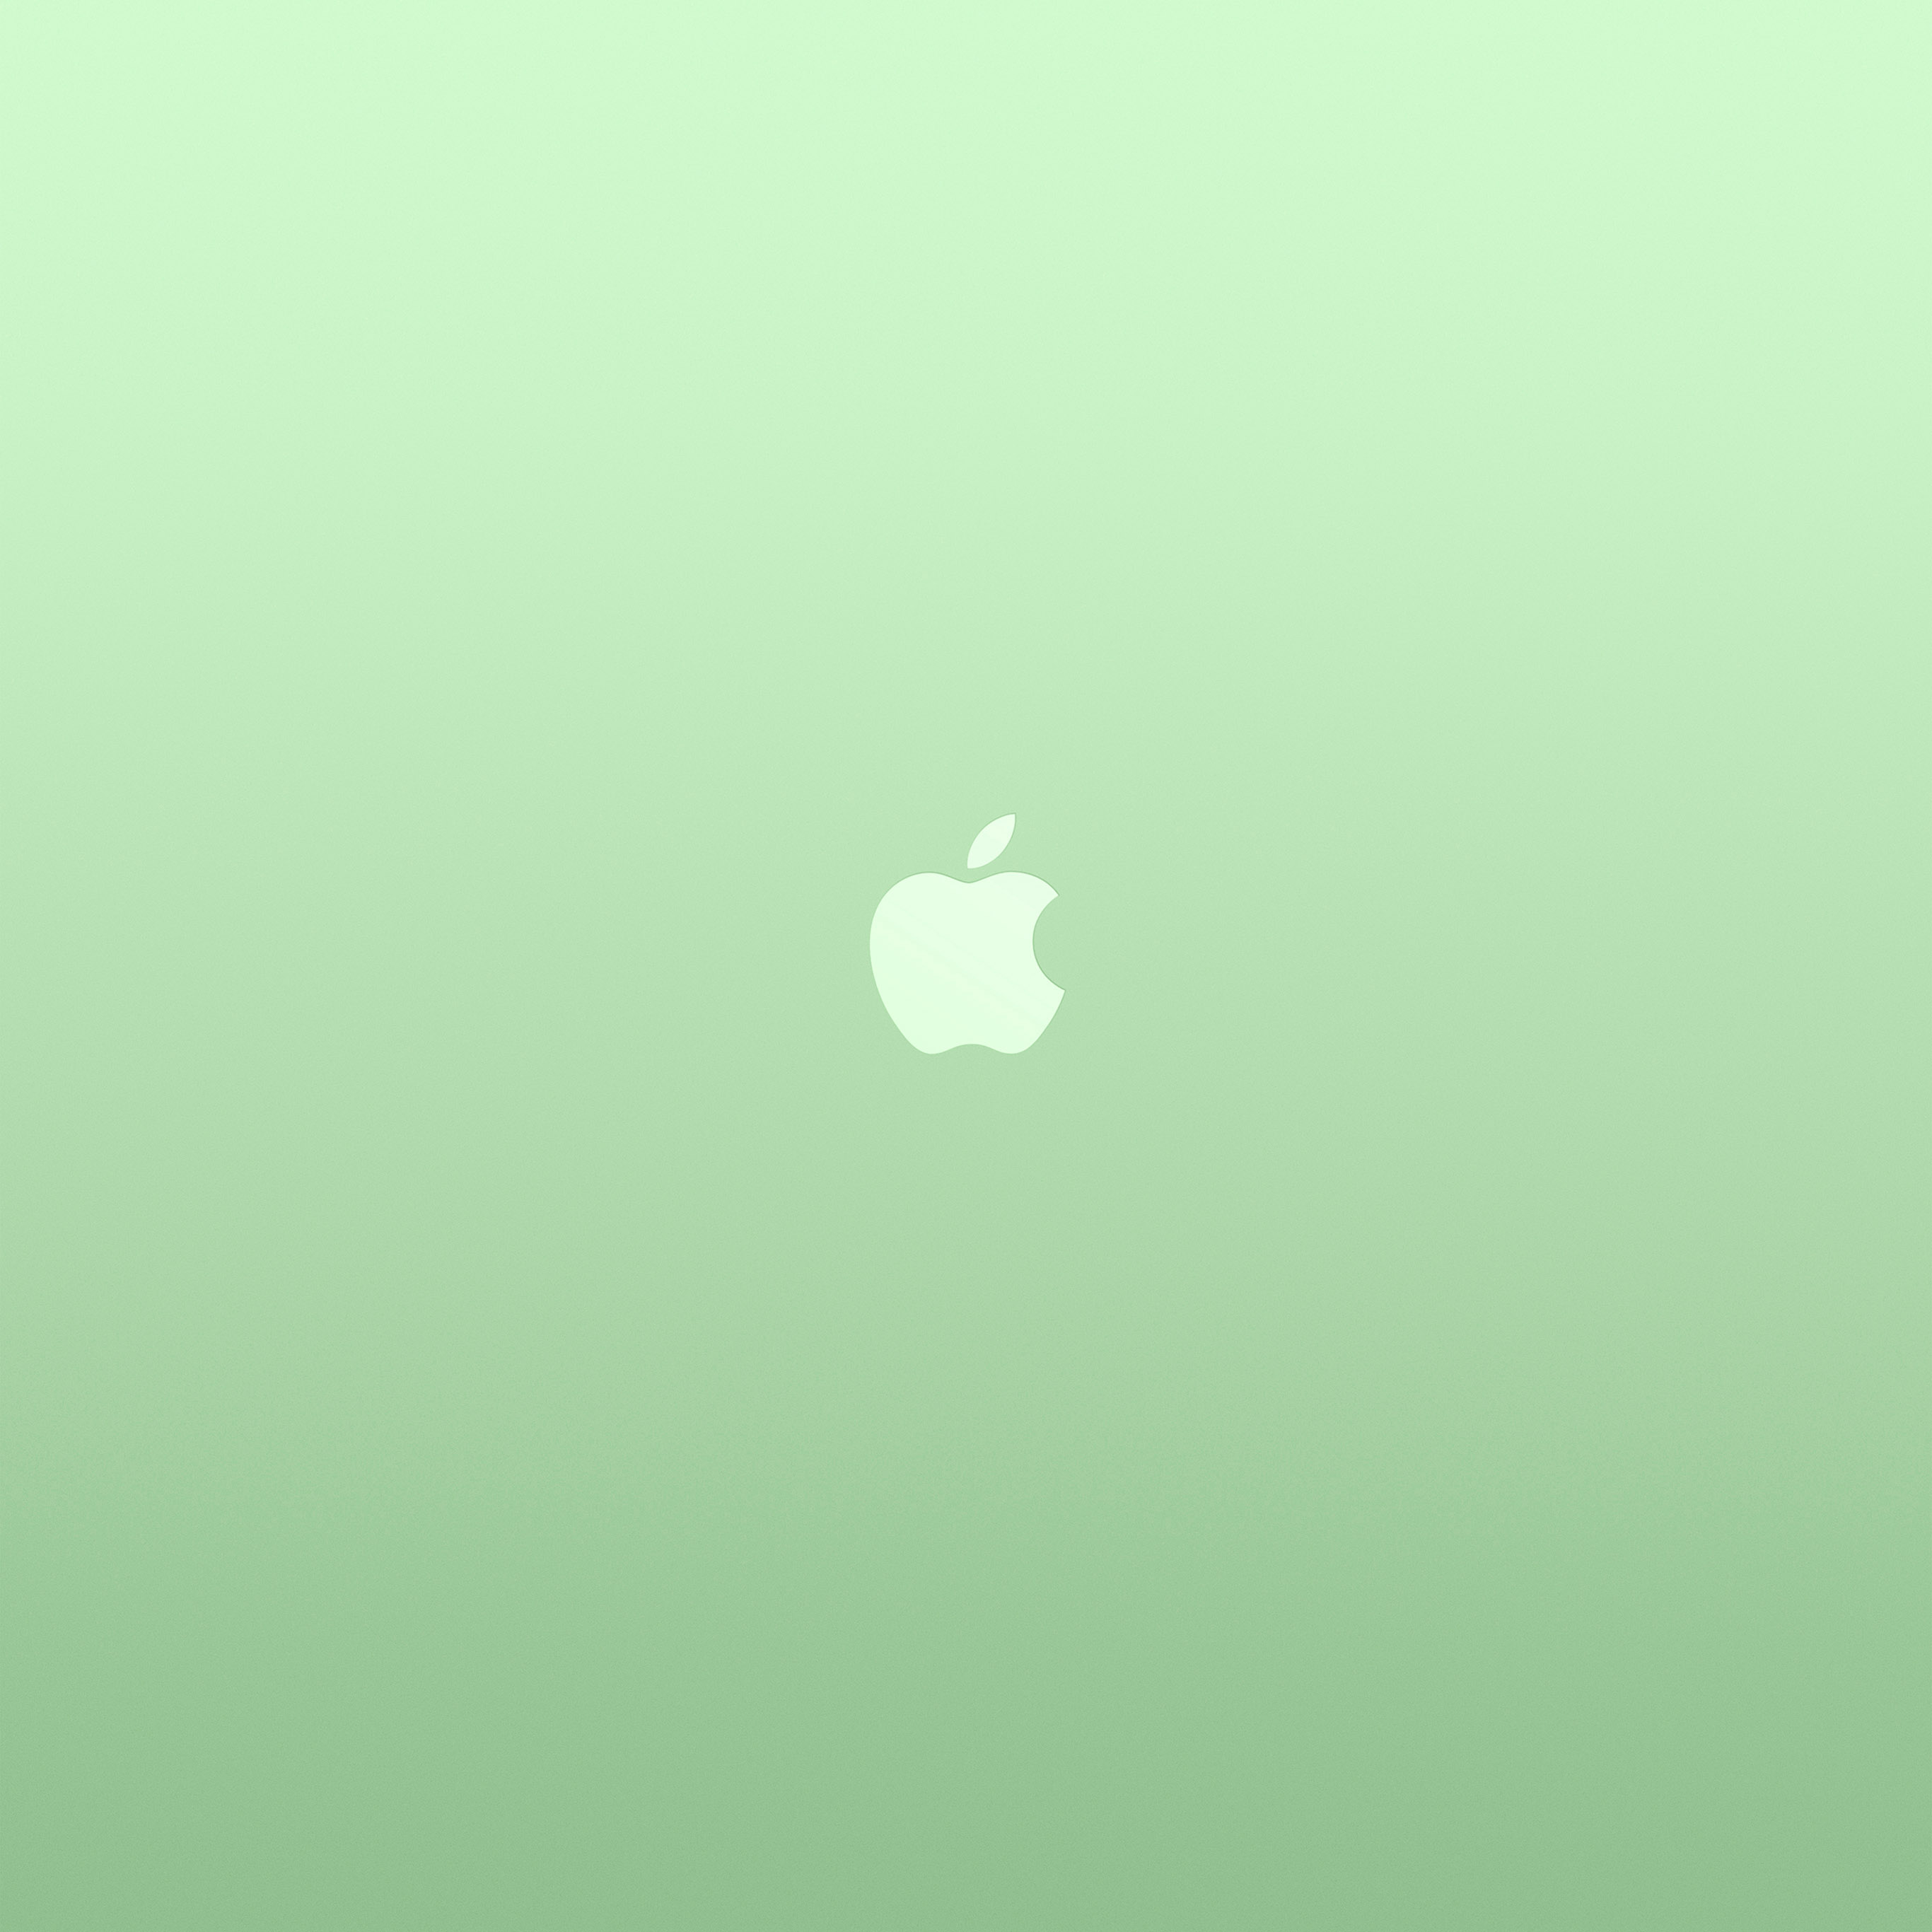 Android wallpaper au18 logo apple green for Art minimal color